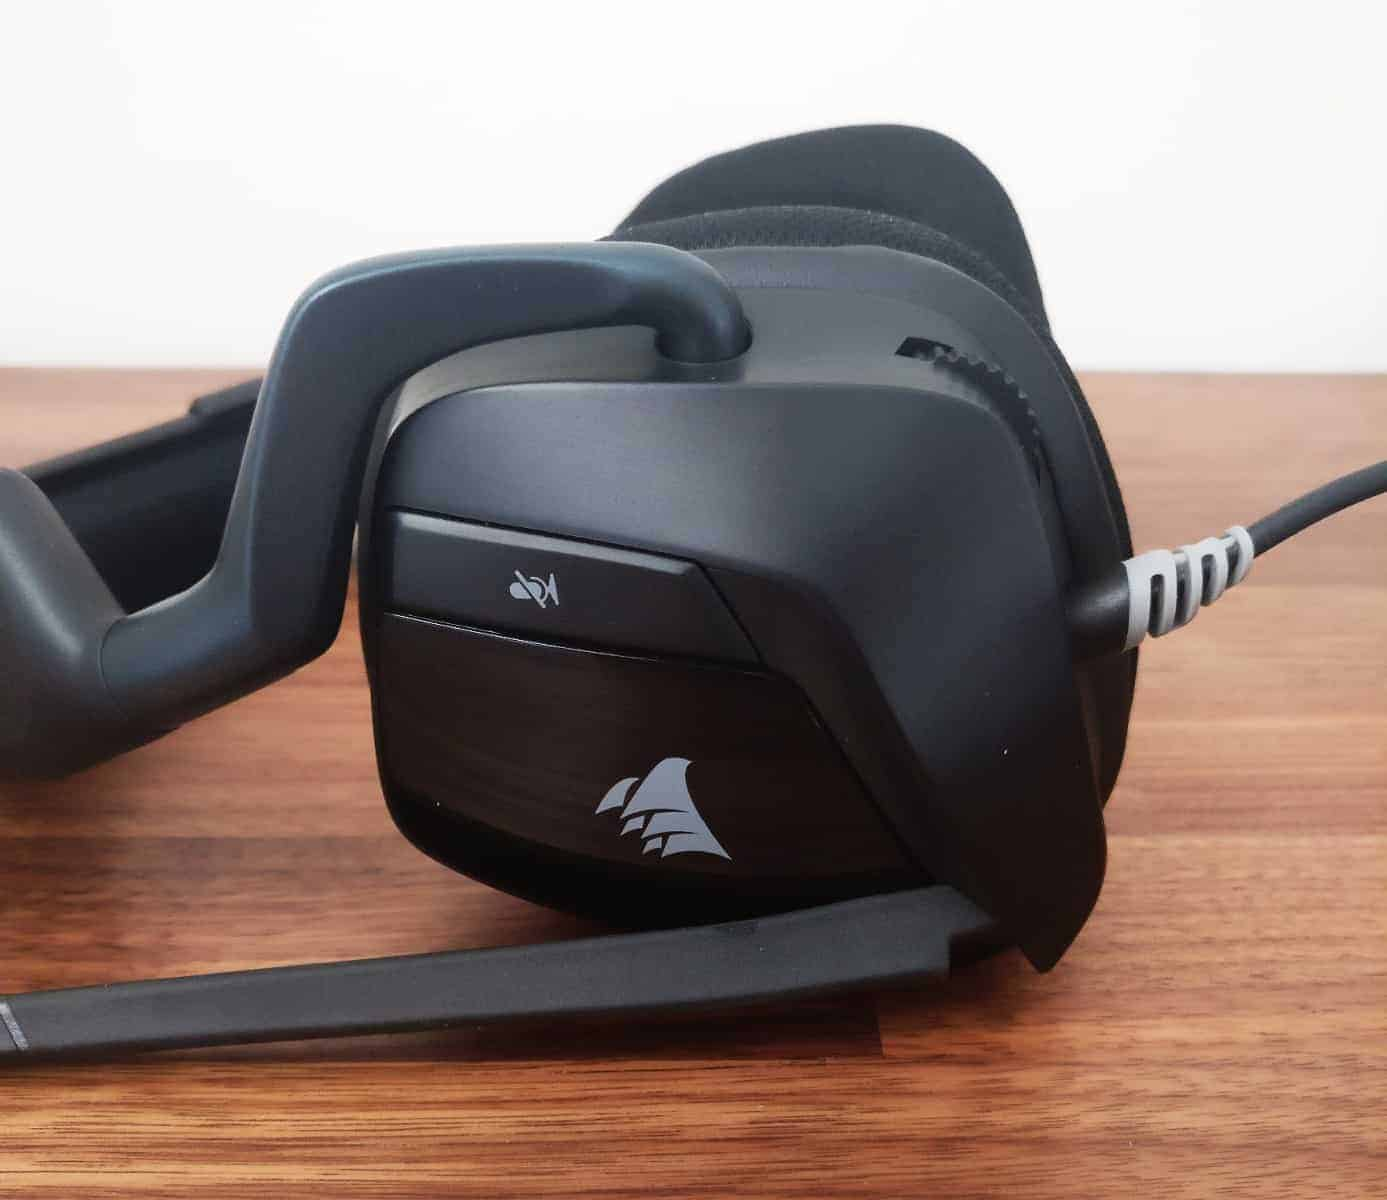 corsair-void-pro-photos-08 Corsair Void Pro Surround Gaming Headset Review